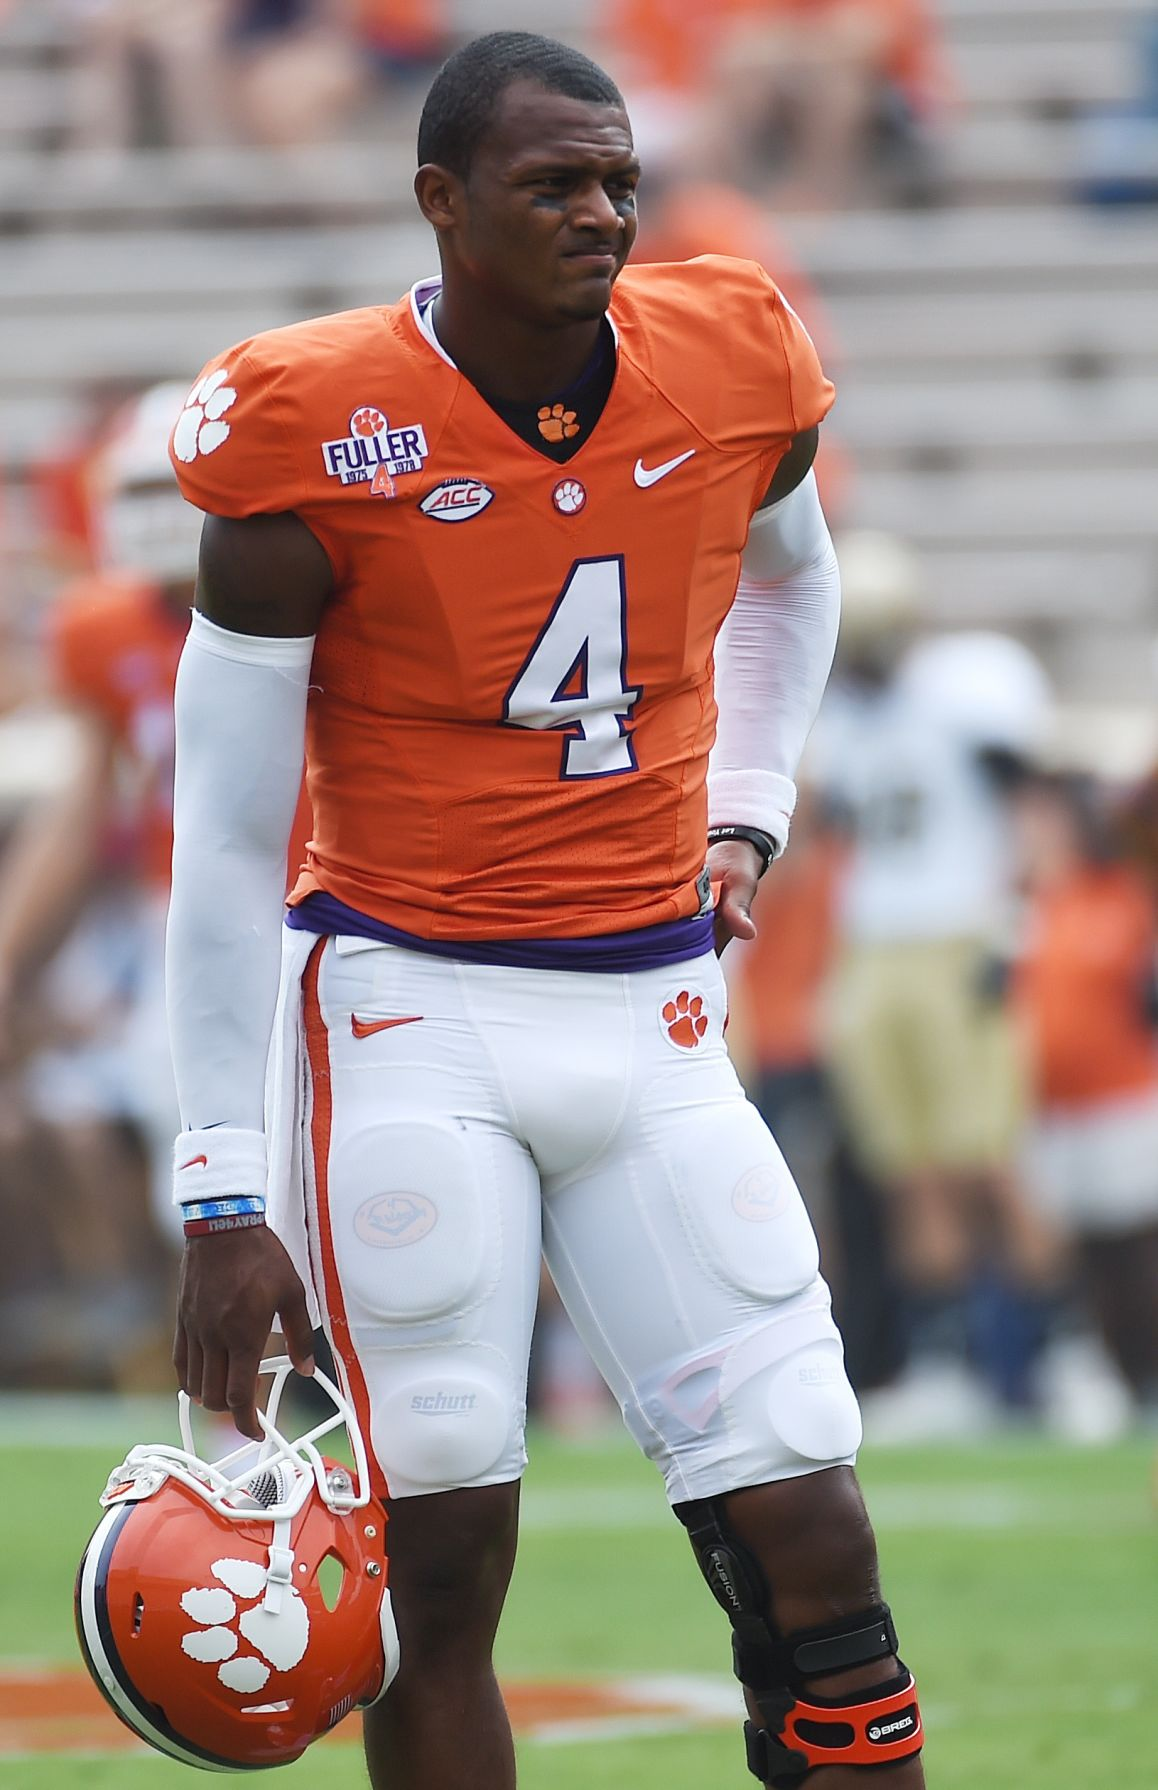 Halftime Hits: Clemson 35, Wofford 7